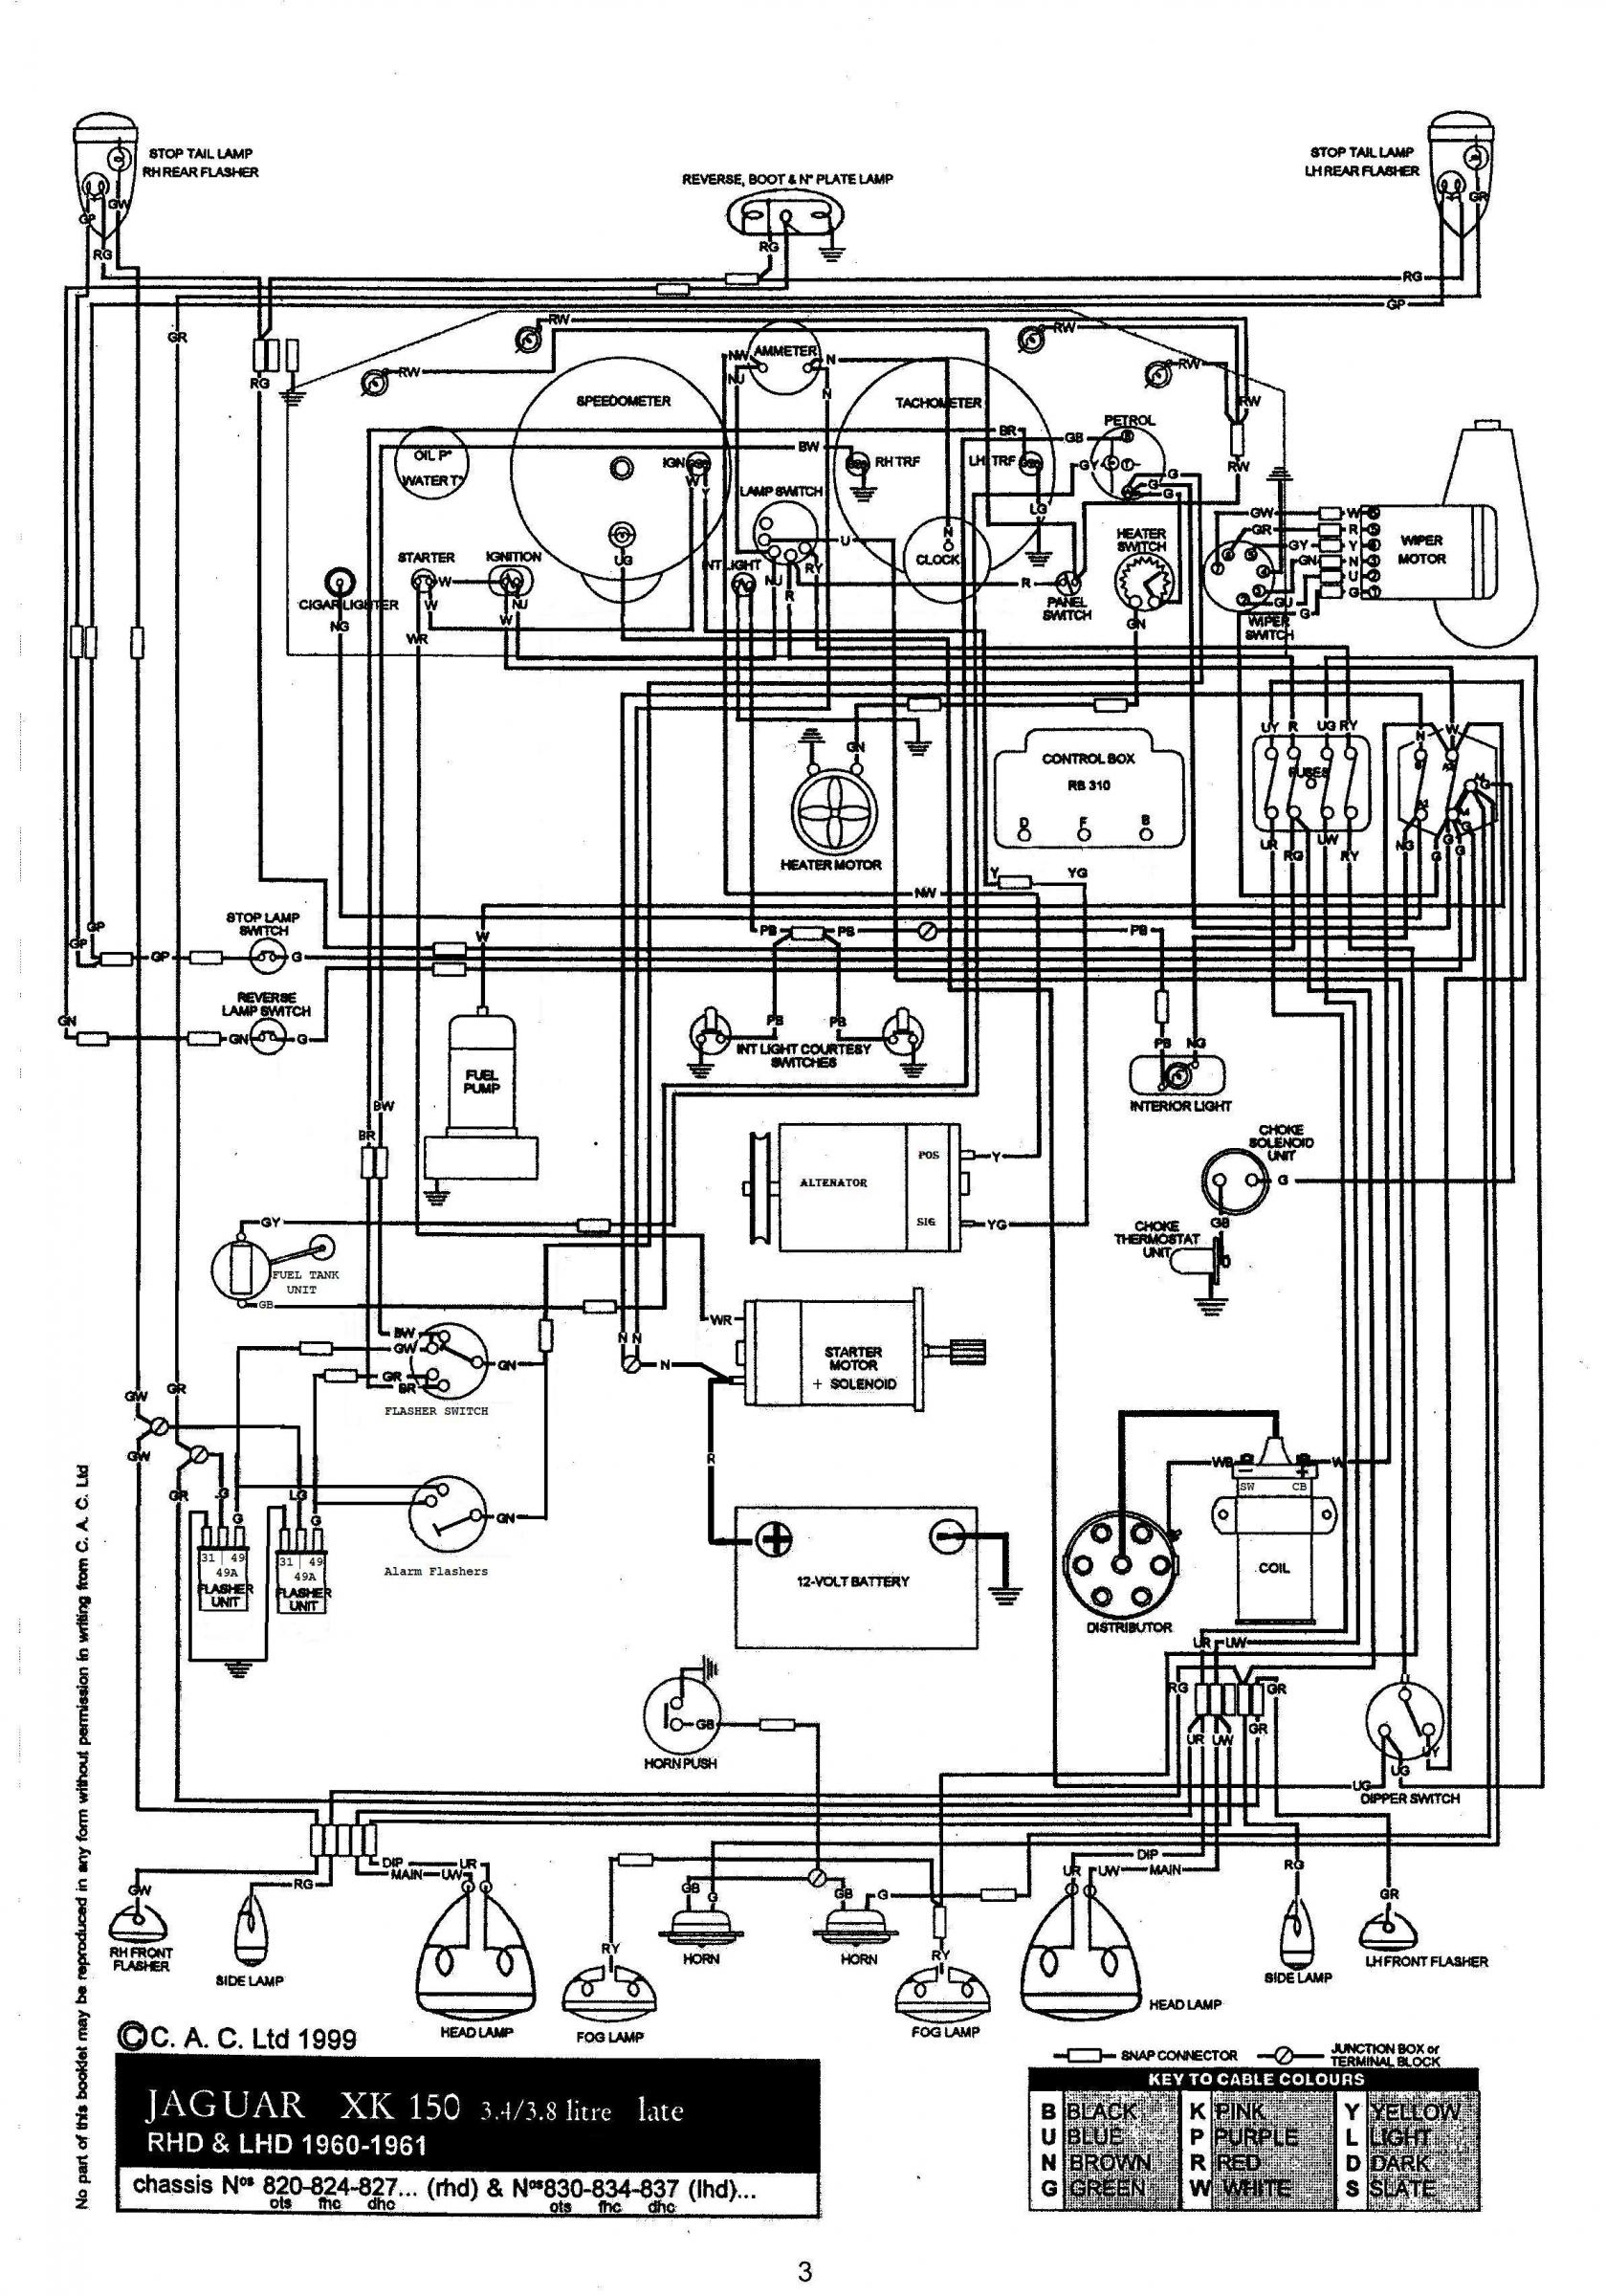 ford sierra cosworth wiring diagram 1991 for electrical outlets 1960 dodge dart get free image about